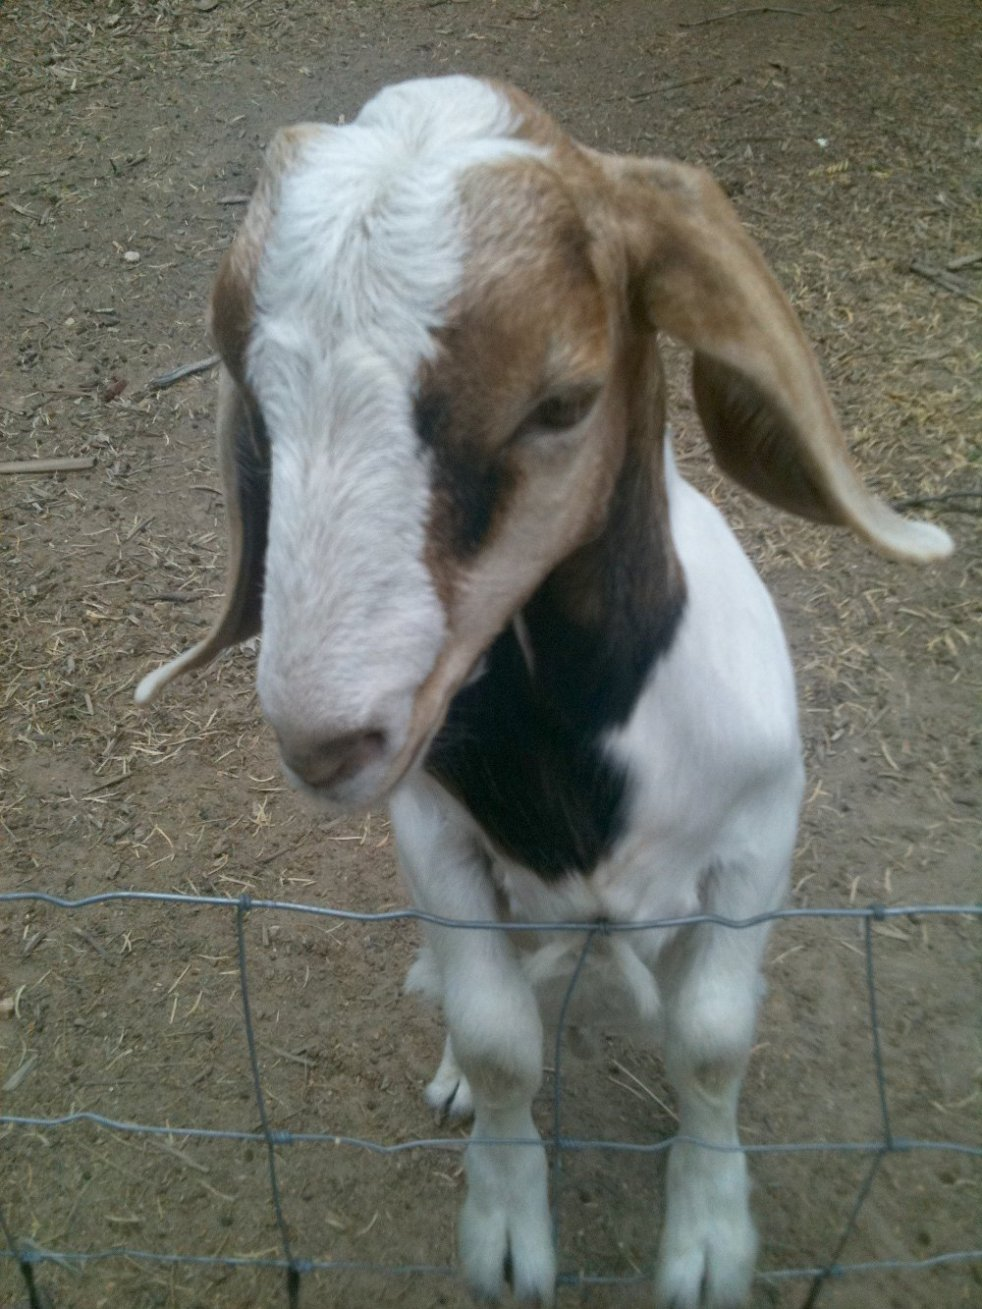 Rudy, a young goat at Sunny Day Farms